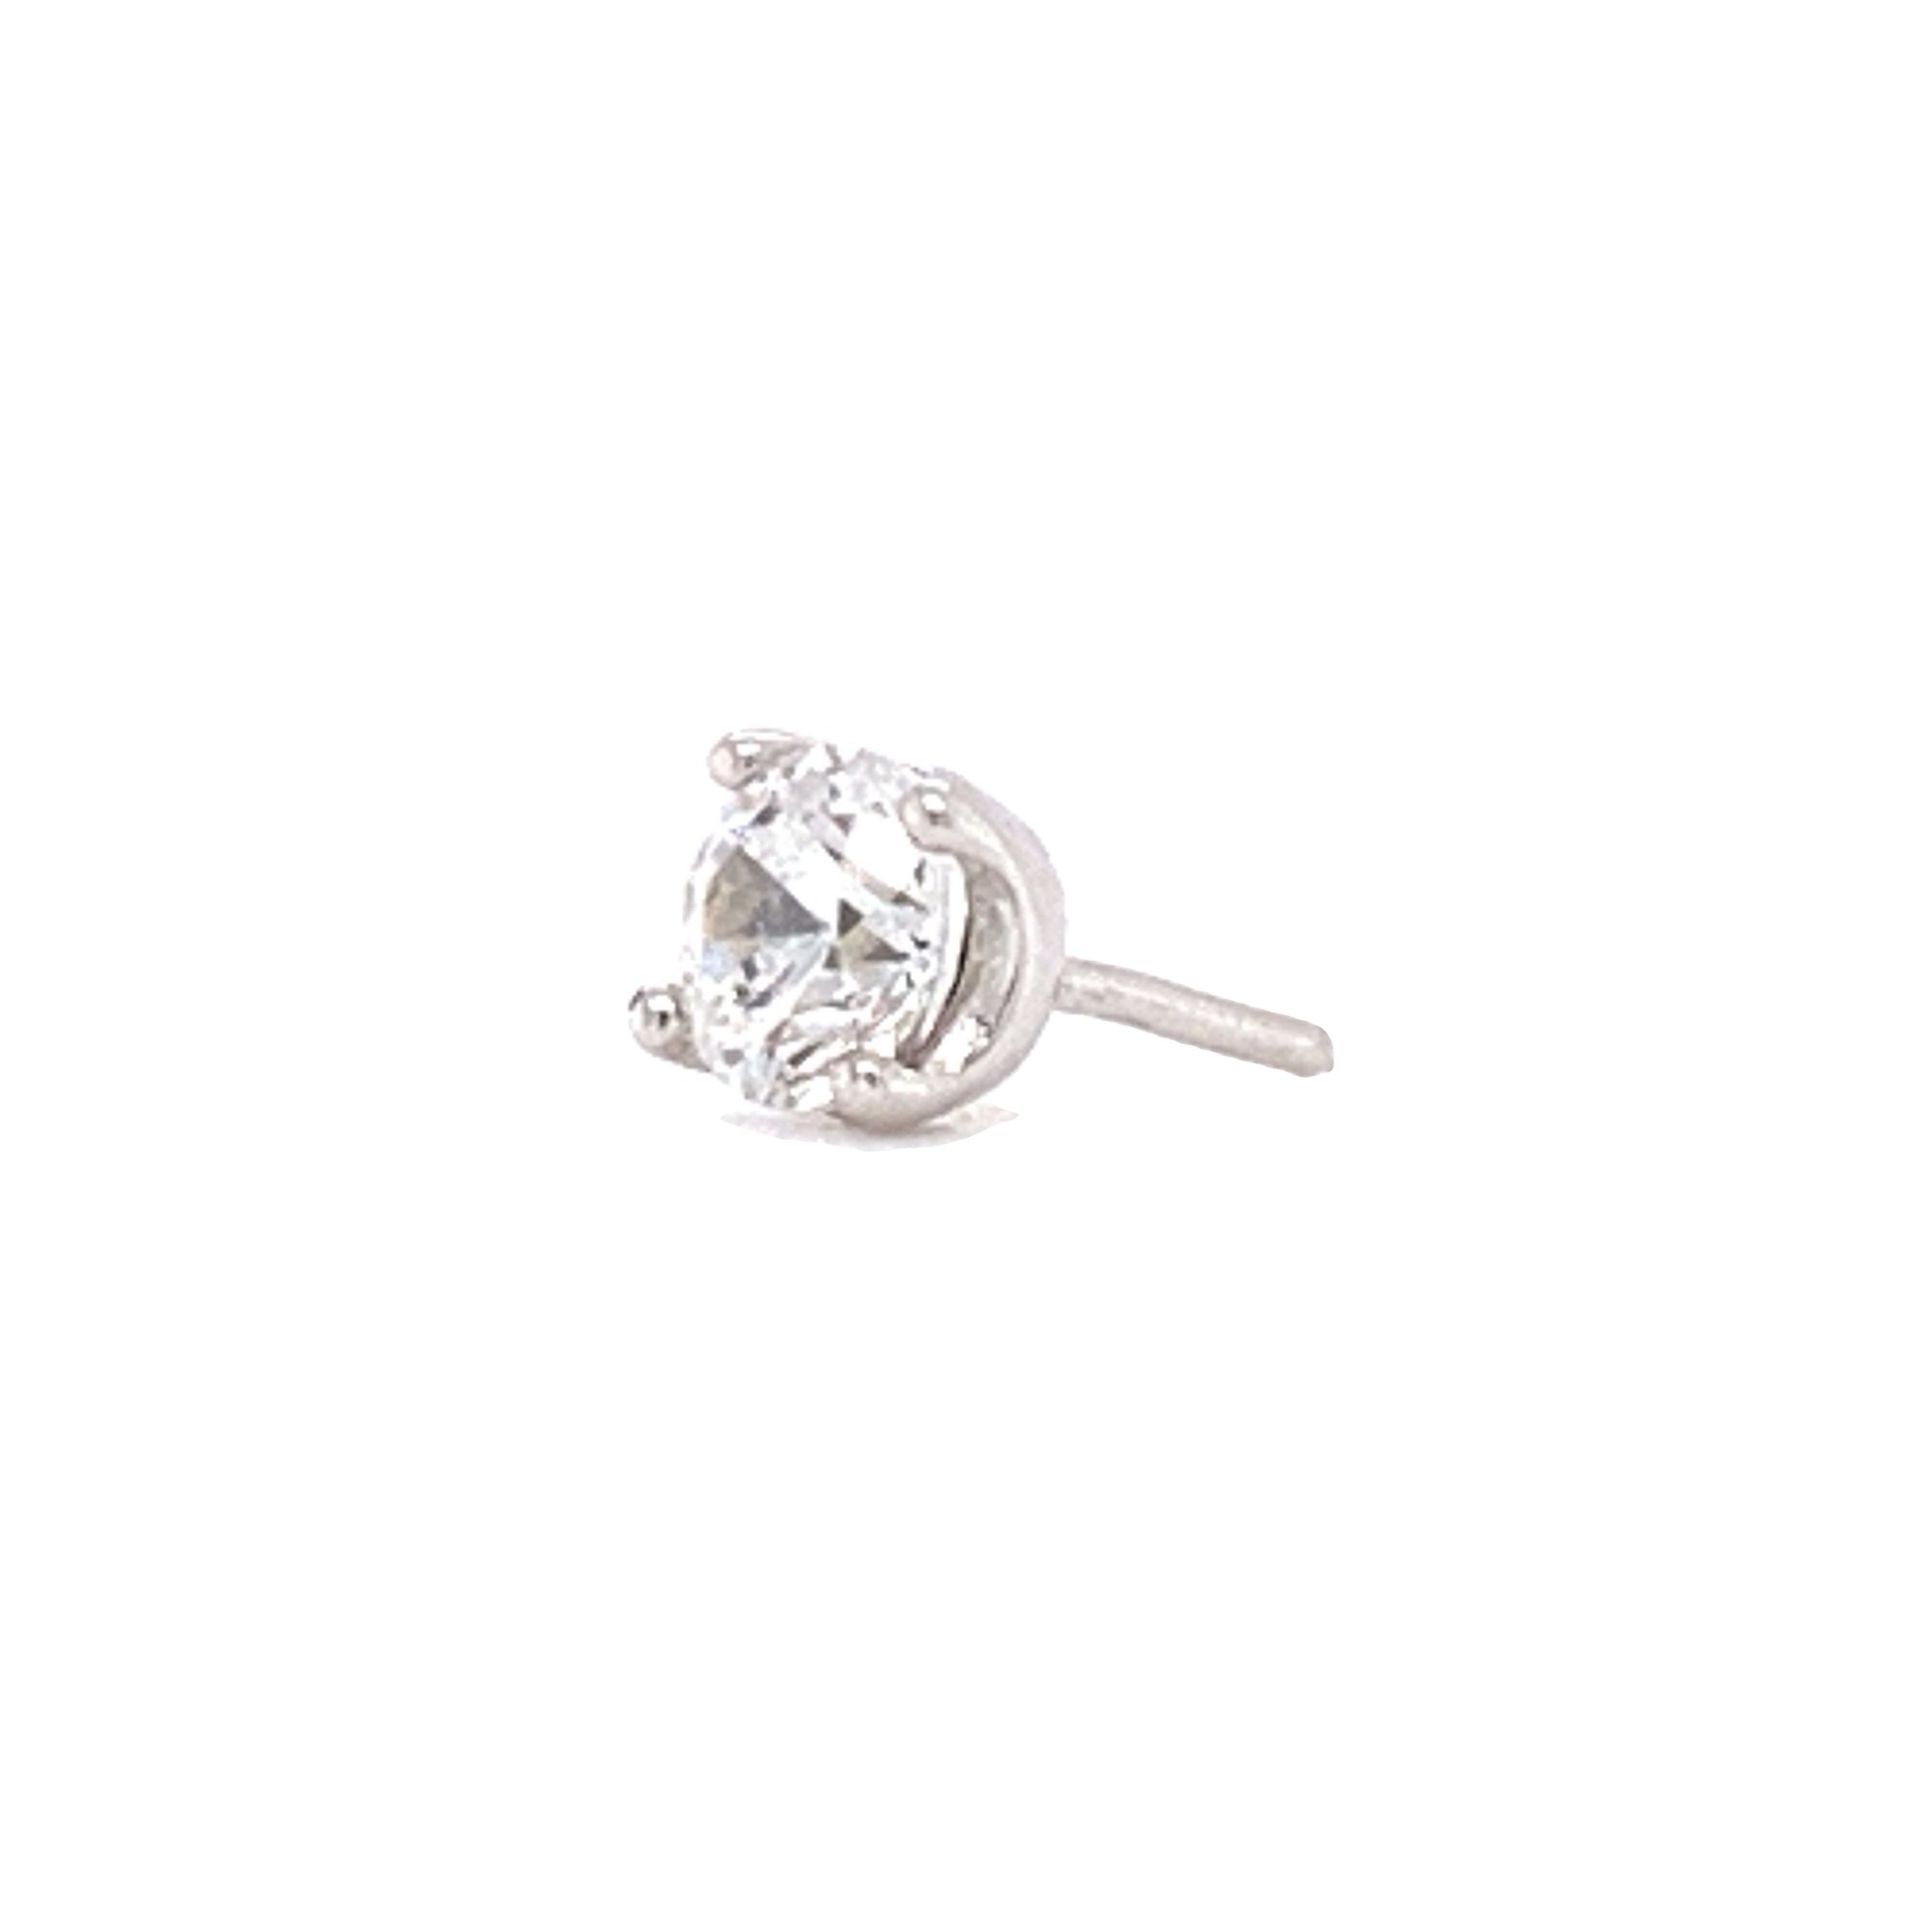 14Ct White Gold Prong Set Swarovski End Attachment